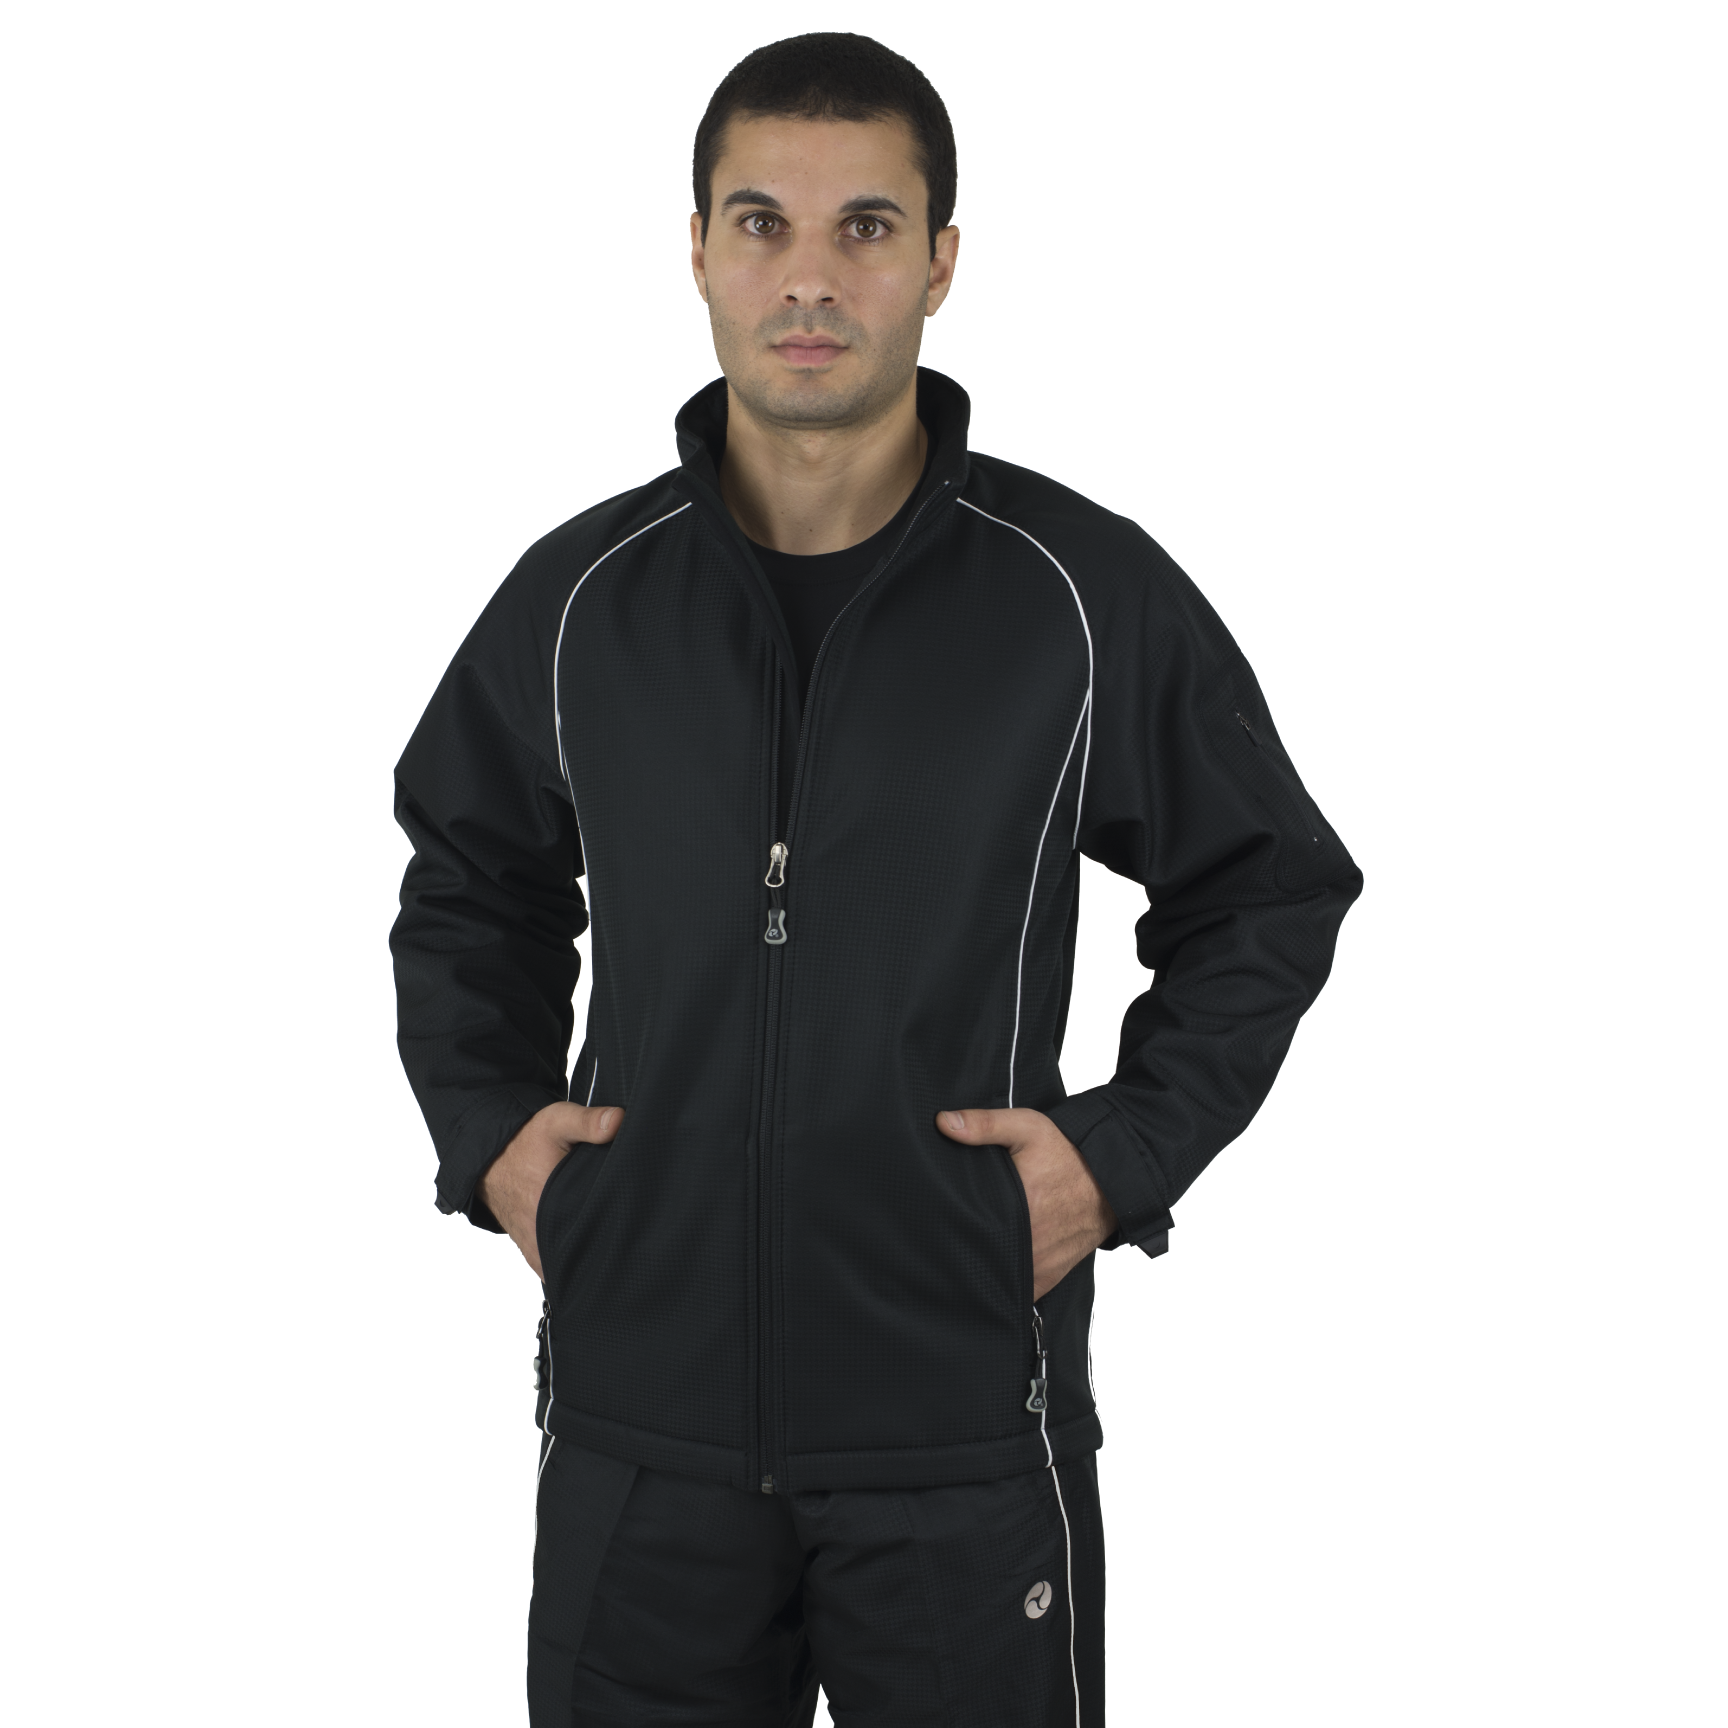 Firstar---Coaches-Jacket.png